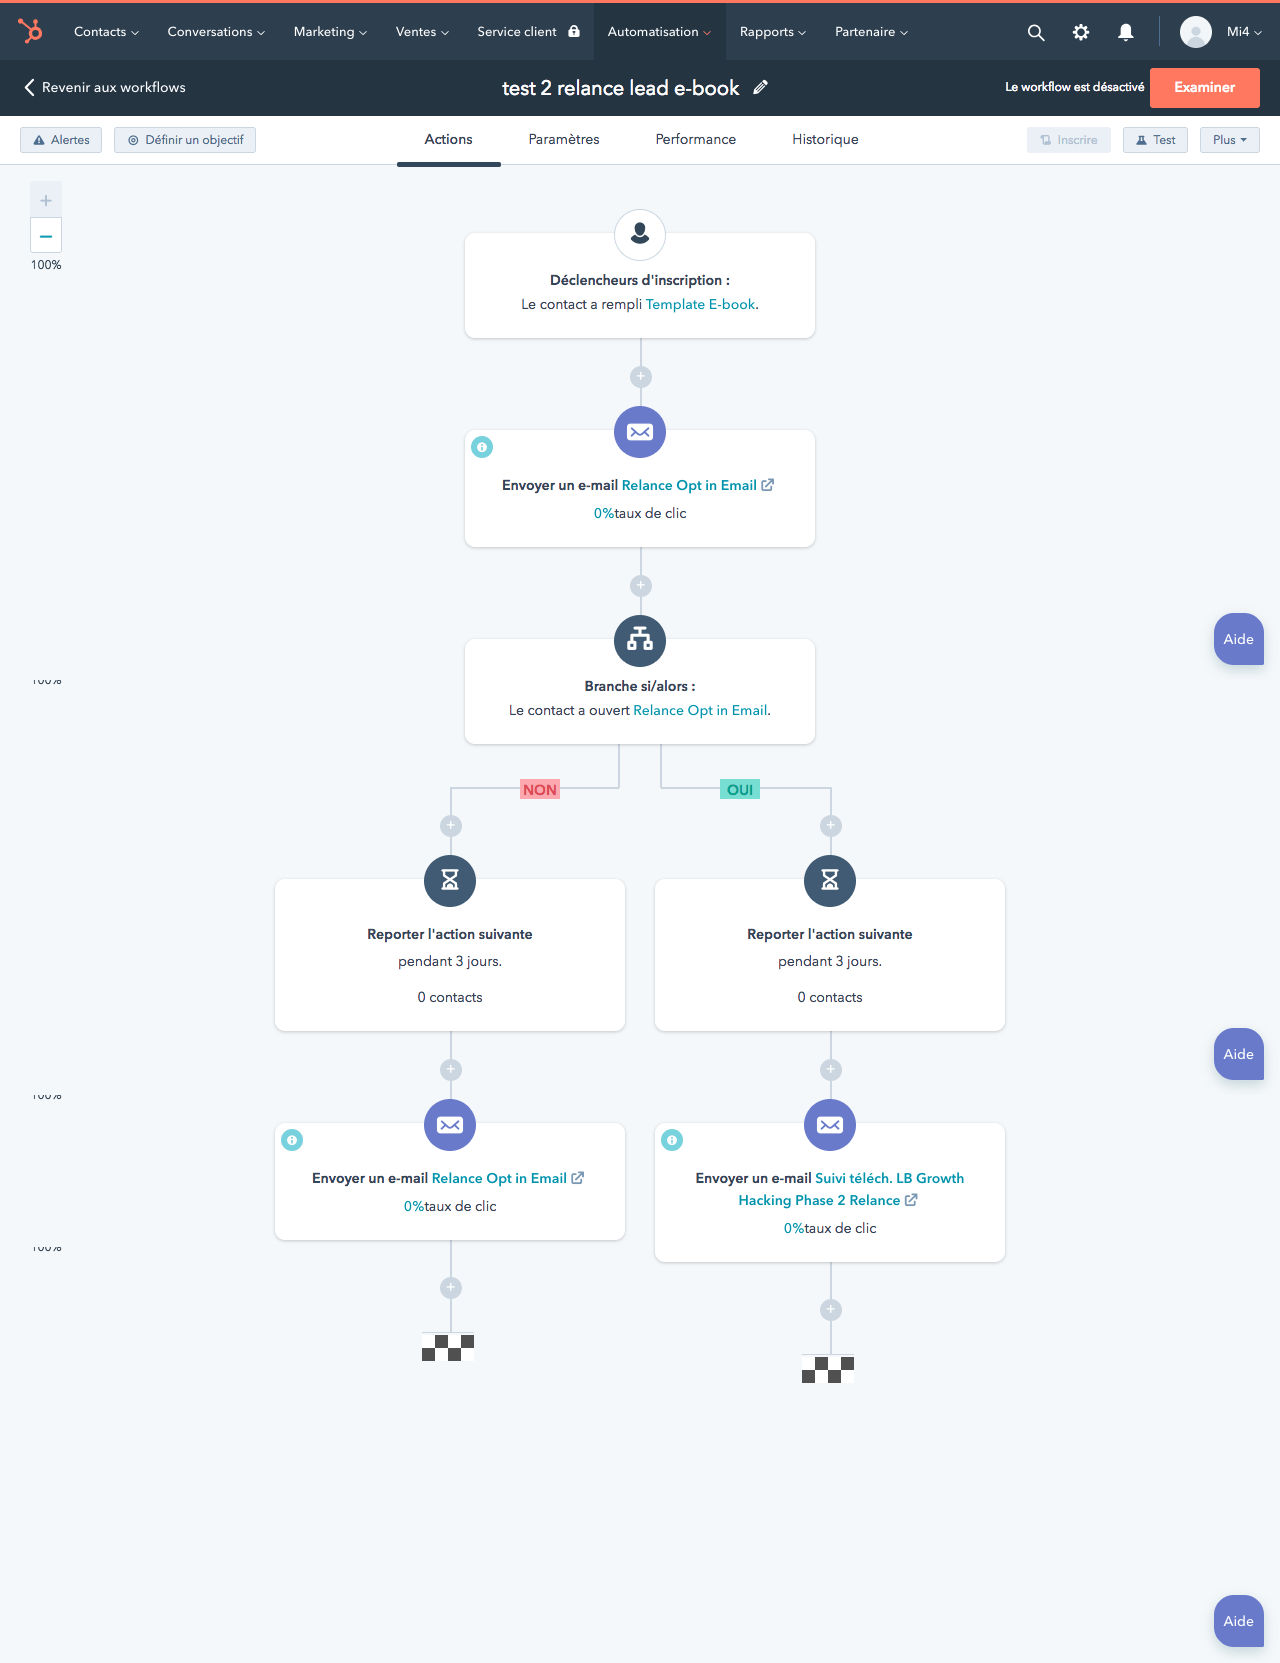 exemple-workflow-hubspot